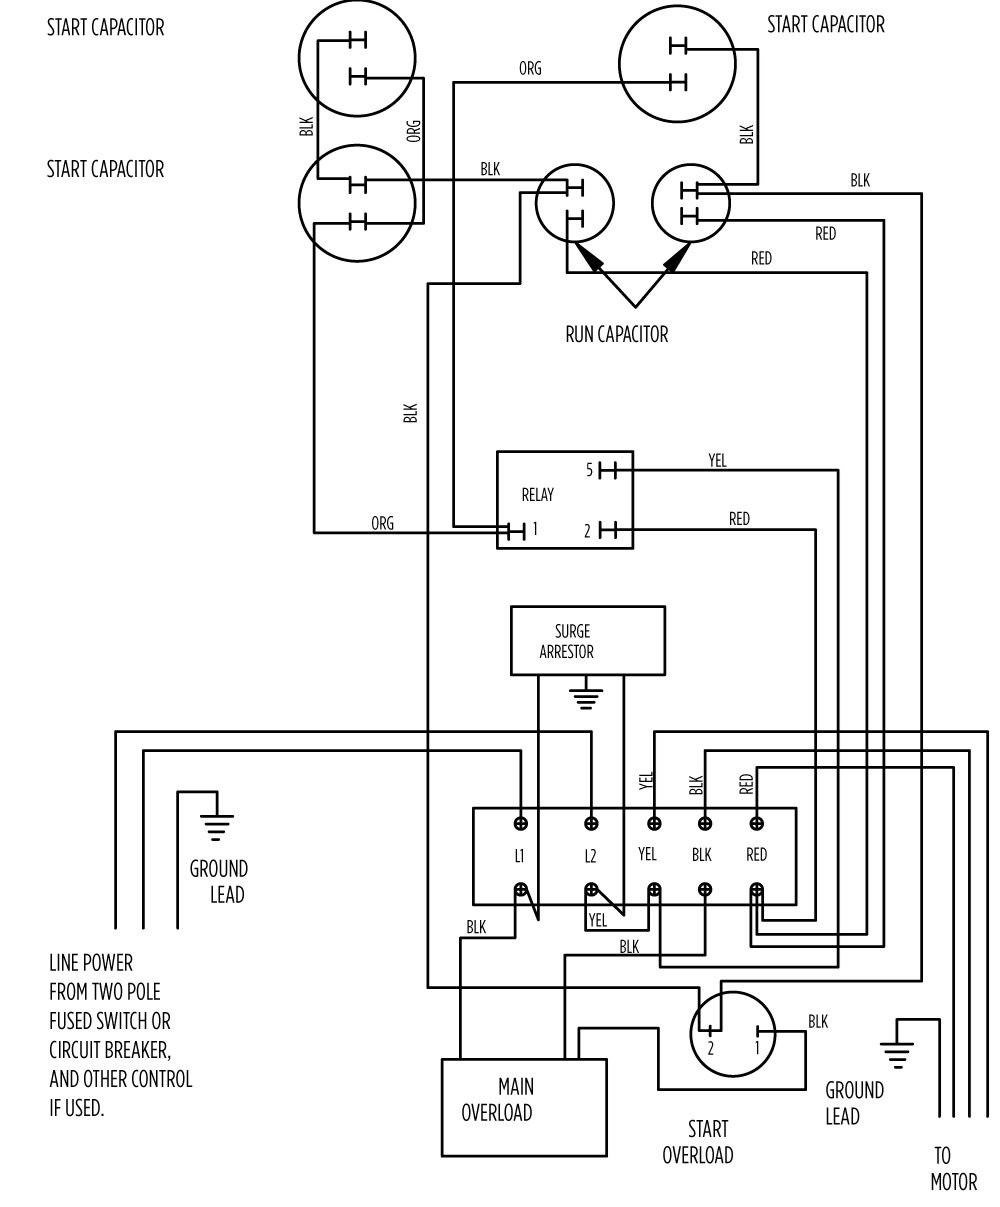 Ceiling Fan Wiring Schematic Box To Diagrams Aim Manual Page 57 Single Phase Motors And Controls Motor 10 Hp